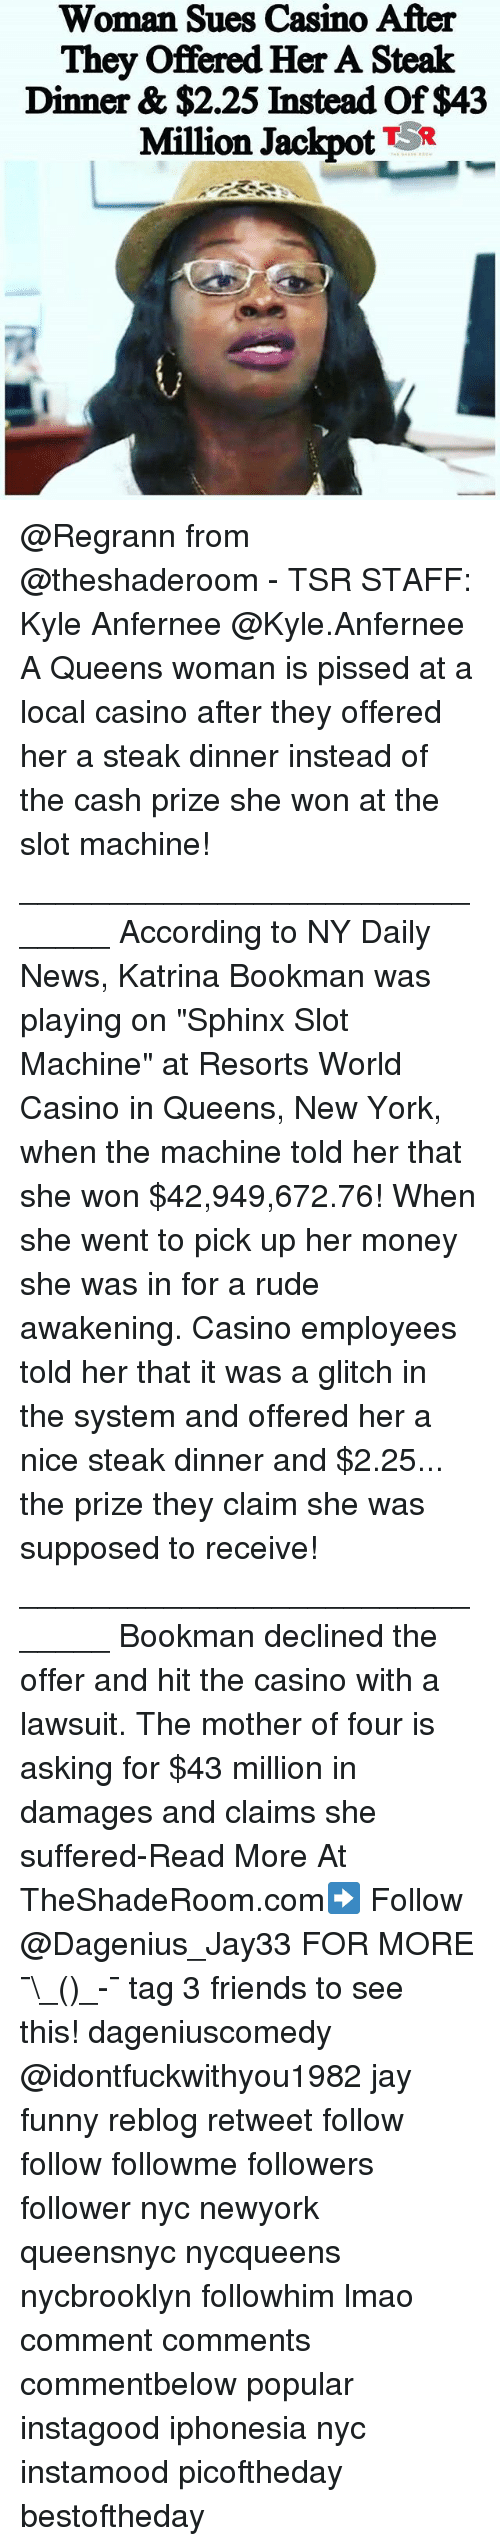 """Friends, Funny, and Jay: Woman Sues Casino After  They offered Her A Steak  Dinner & $2.25 Instead Of $43  Million Jackpot  TSR @Regrann from @theshaderoom - TSR STAFF: Kyle Anfernee @Kyle.Anfernee A Queens woman is pissed at a local casino after they offered her a steak dinner instead of the cash prize she won at the slot machine! ______________________________ According to NY Daily News, Katrina Bookman was playing on """"Sphinx Slot Machine"""" at Resorts World Casino in Queens, New York, when the machine told her that she won $42,949,672.76! When she went to pick up her money she was in for a rude awakening. Casino employees told her that it was a glitch in the system and offered her a nice steak dinner and $2.25... the prize they claim she was supposed to receive! ______________________________ Bookman declined the offer and hit the casino with a lawsuit. The mother of four is asking for $43 million in damages and claims she suffered-Read More At TheShadeRoom.com➡️ Follow @Dagenius_Jay33 FOR MORE ¯\_(ツ)_-¯ tag 3 friends to see this! dageniuscomedy @idontfuckwithyou1982 jay funny reblog retweet follow follow followme followers follower nyc newyork queensnyc nycqueens nycbrooklyn followhim lmao comment comments commentbelow popular instagood iphonesia nyc instamood picoftheday bestoftheday"""